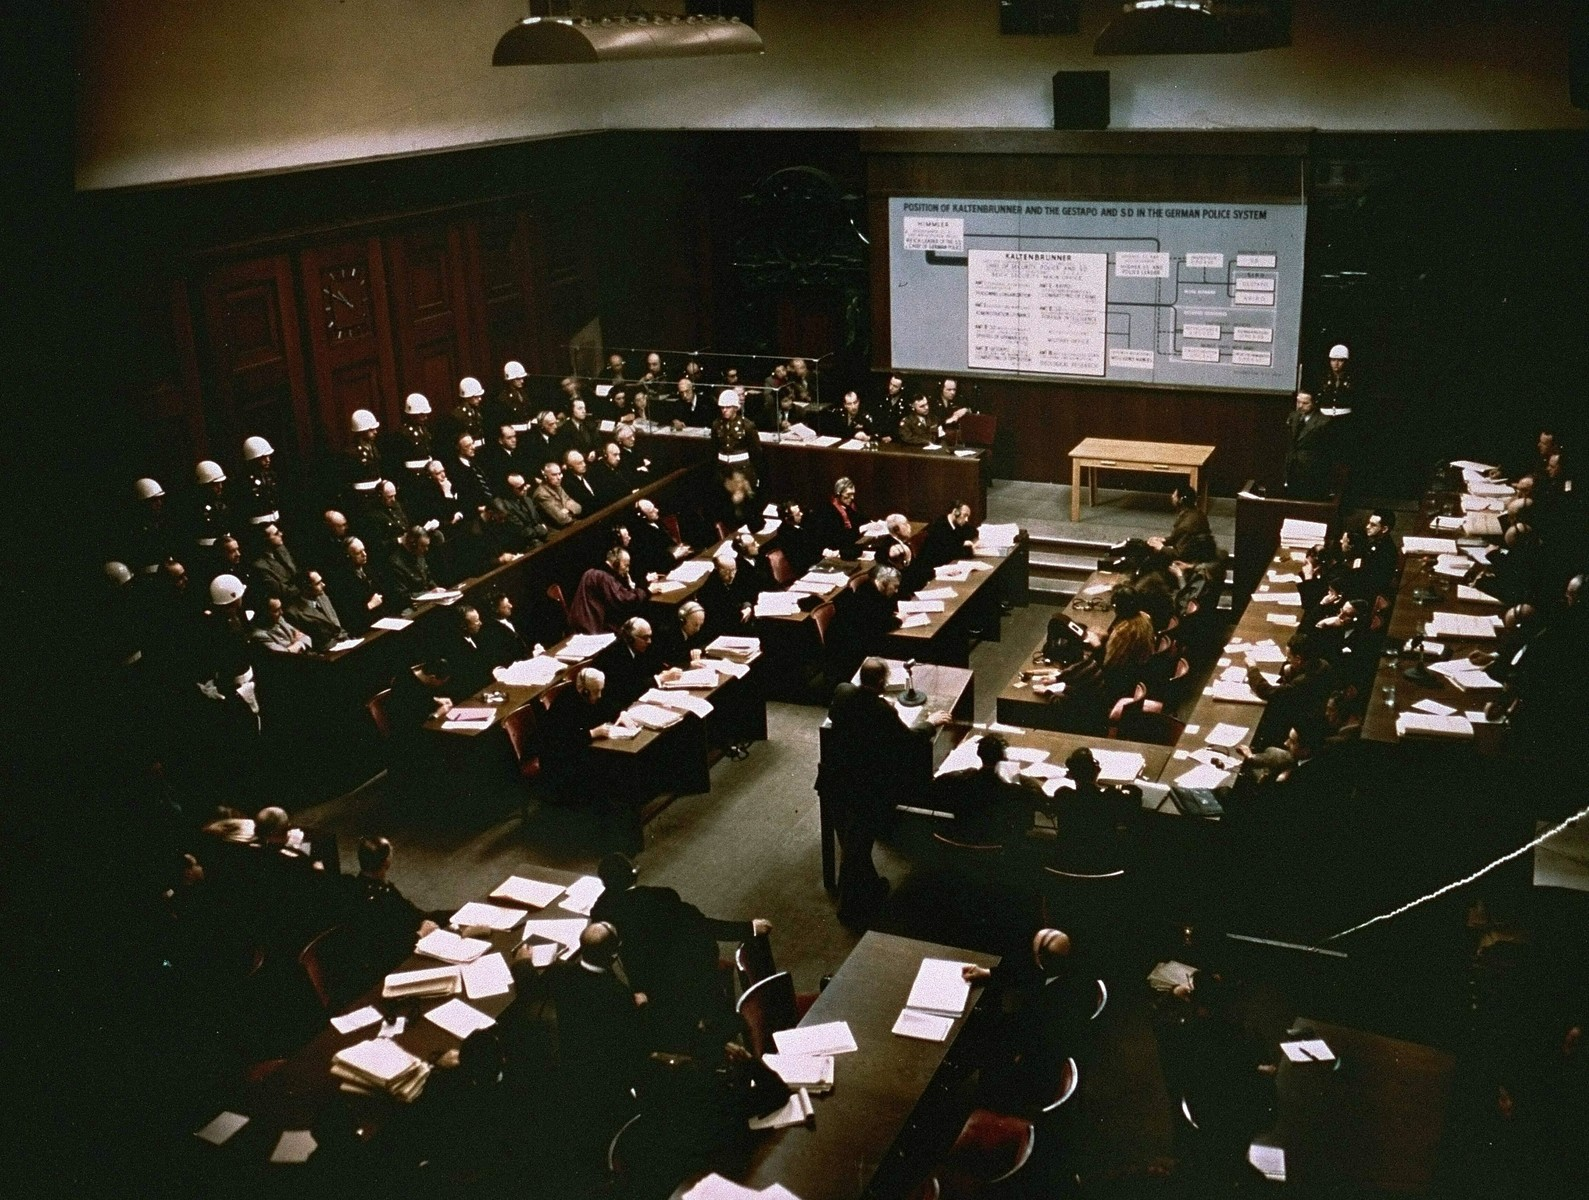 The presentation of evidence about defendant Ernst Kaltenbrunner at the International Military Tribunal trial of war criminals at Nuremberg.